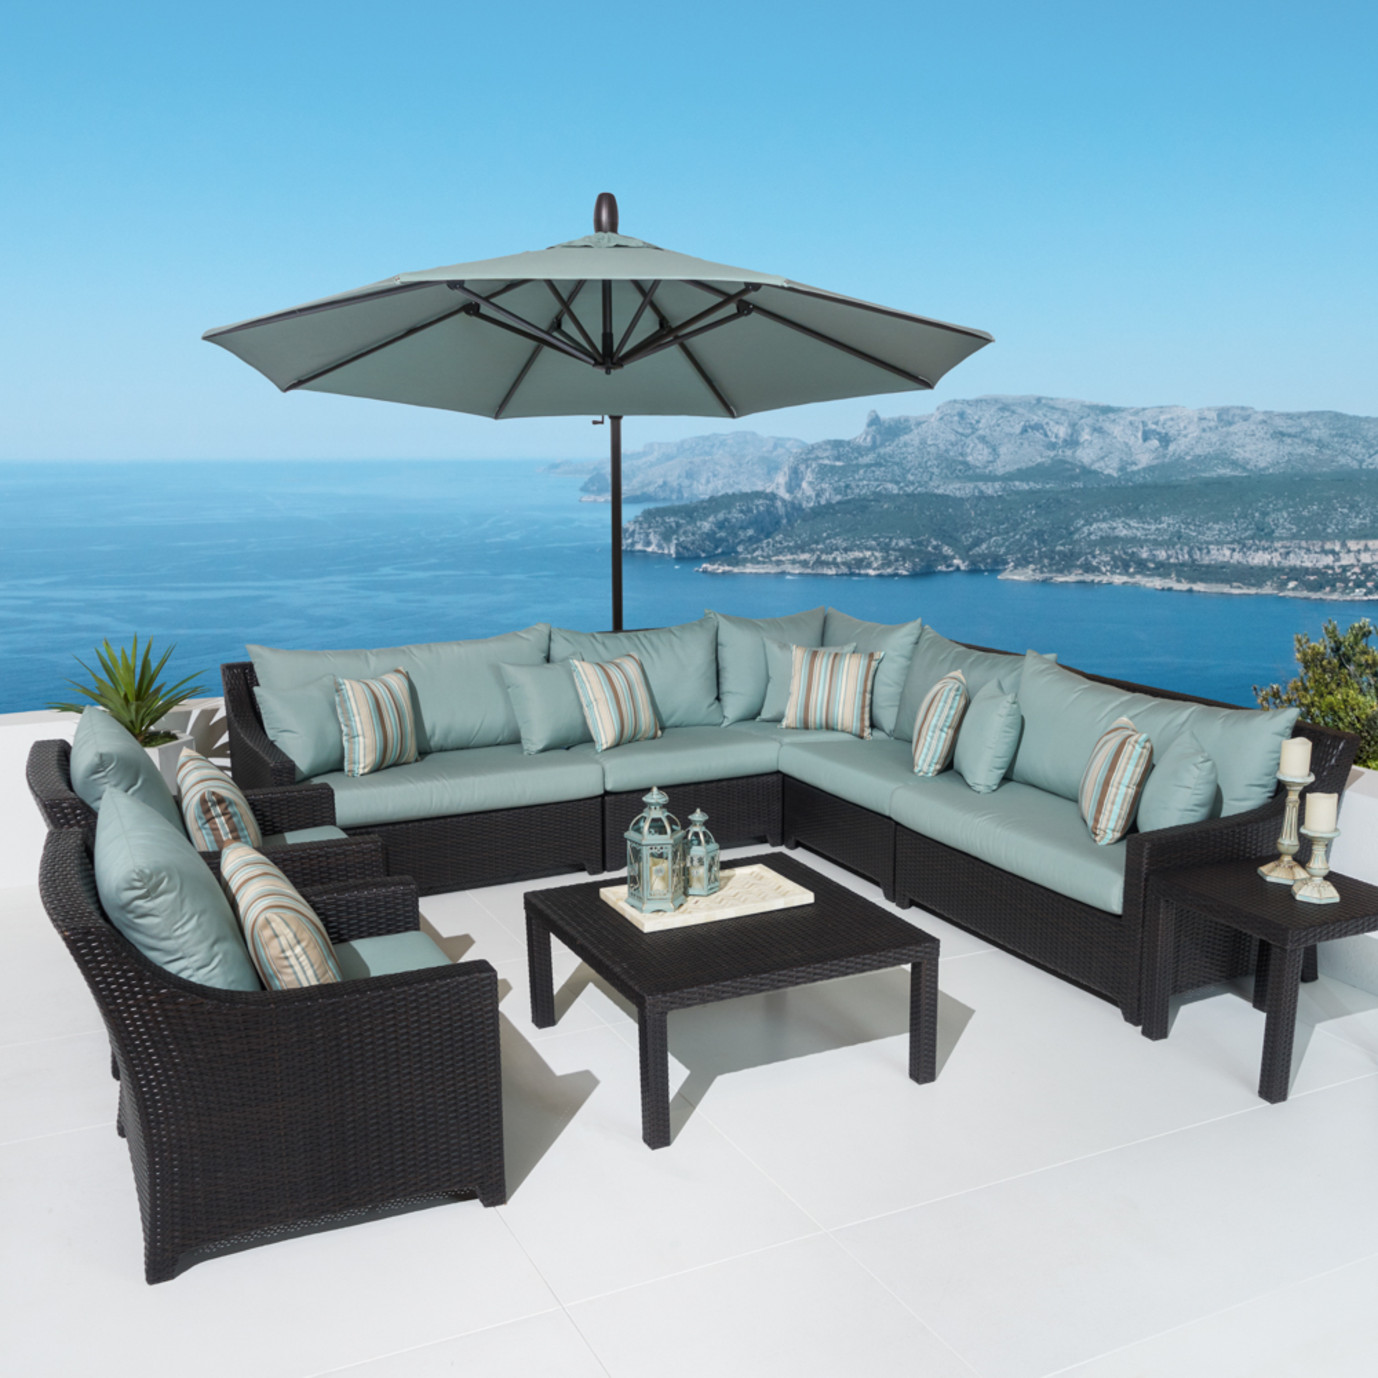 Deco™ 9pc Sectional and Club Set with Umbrella - Bliss Blue